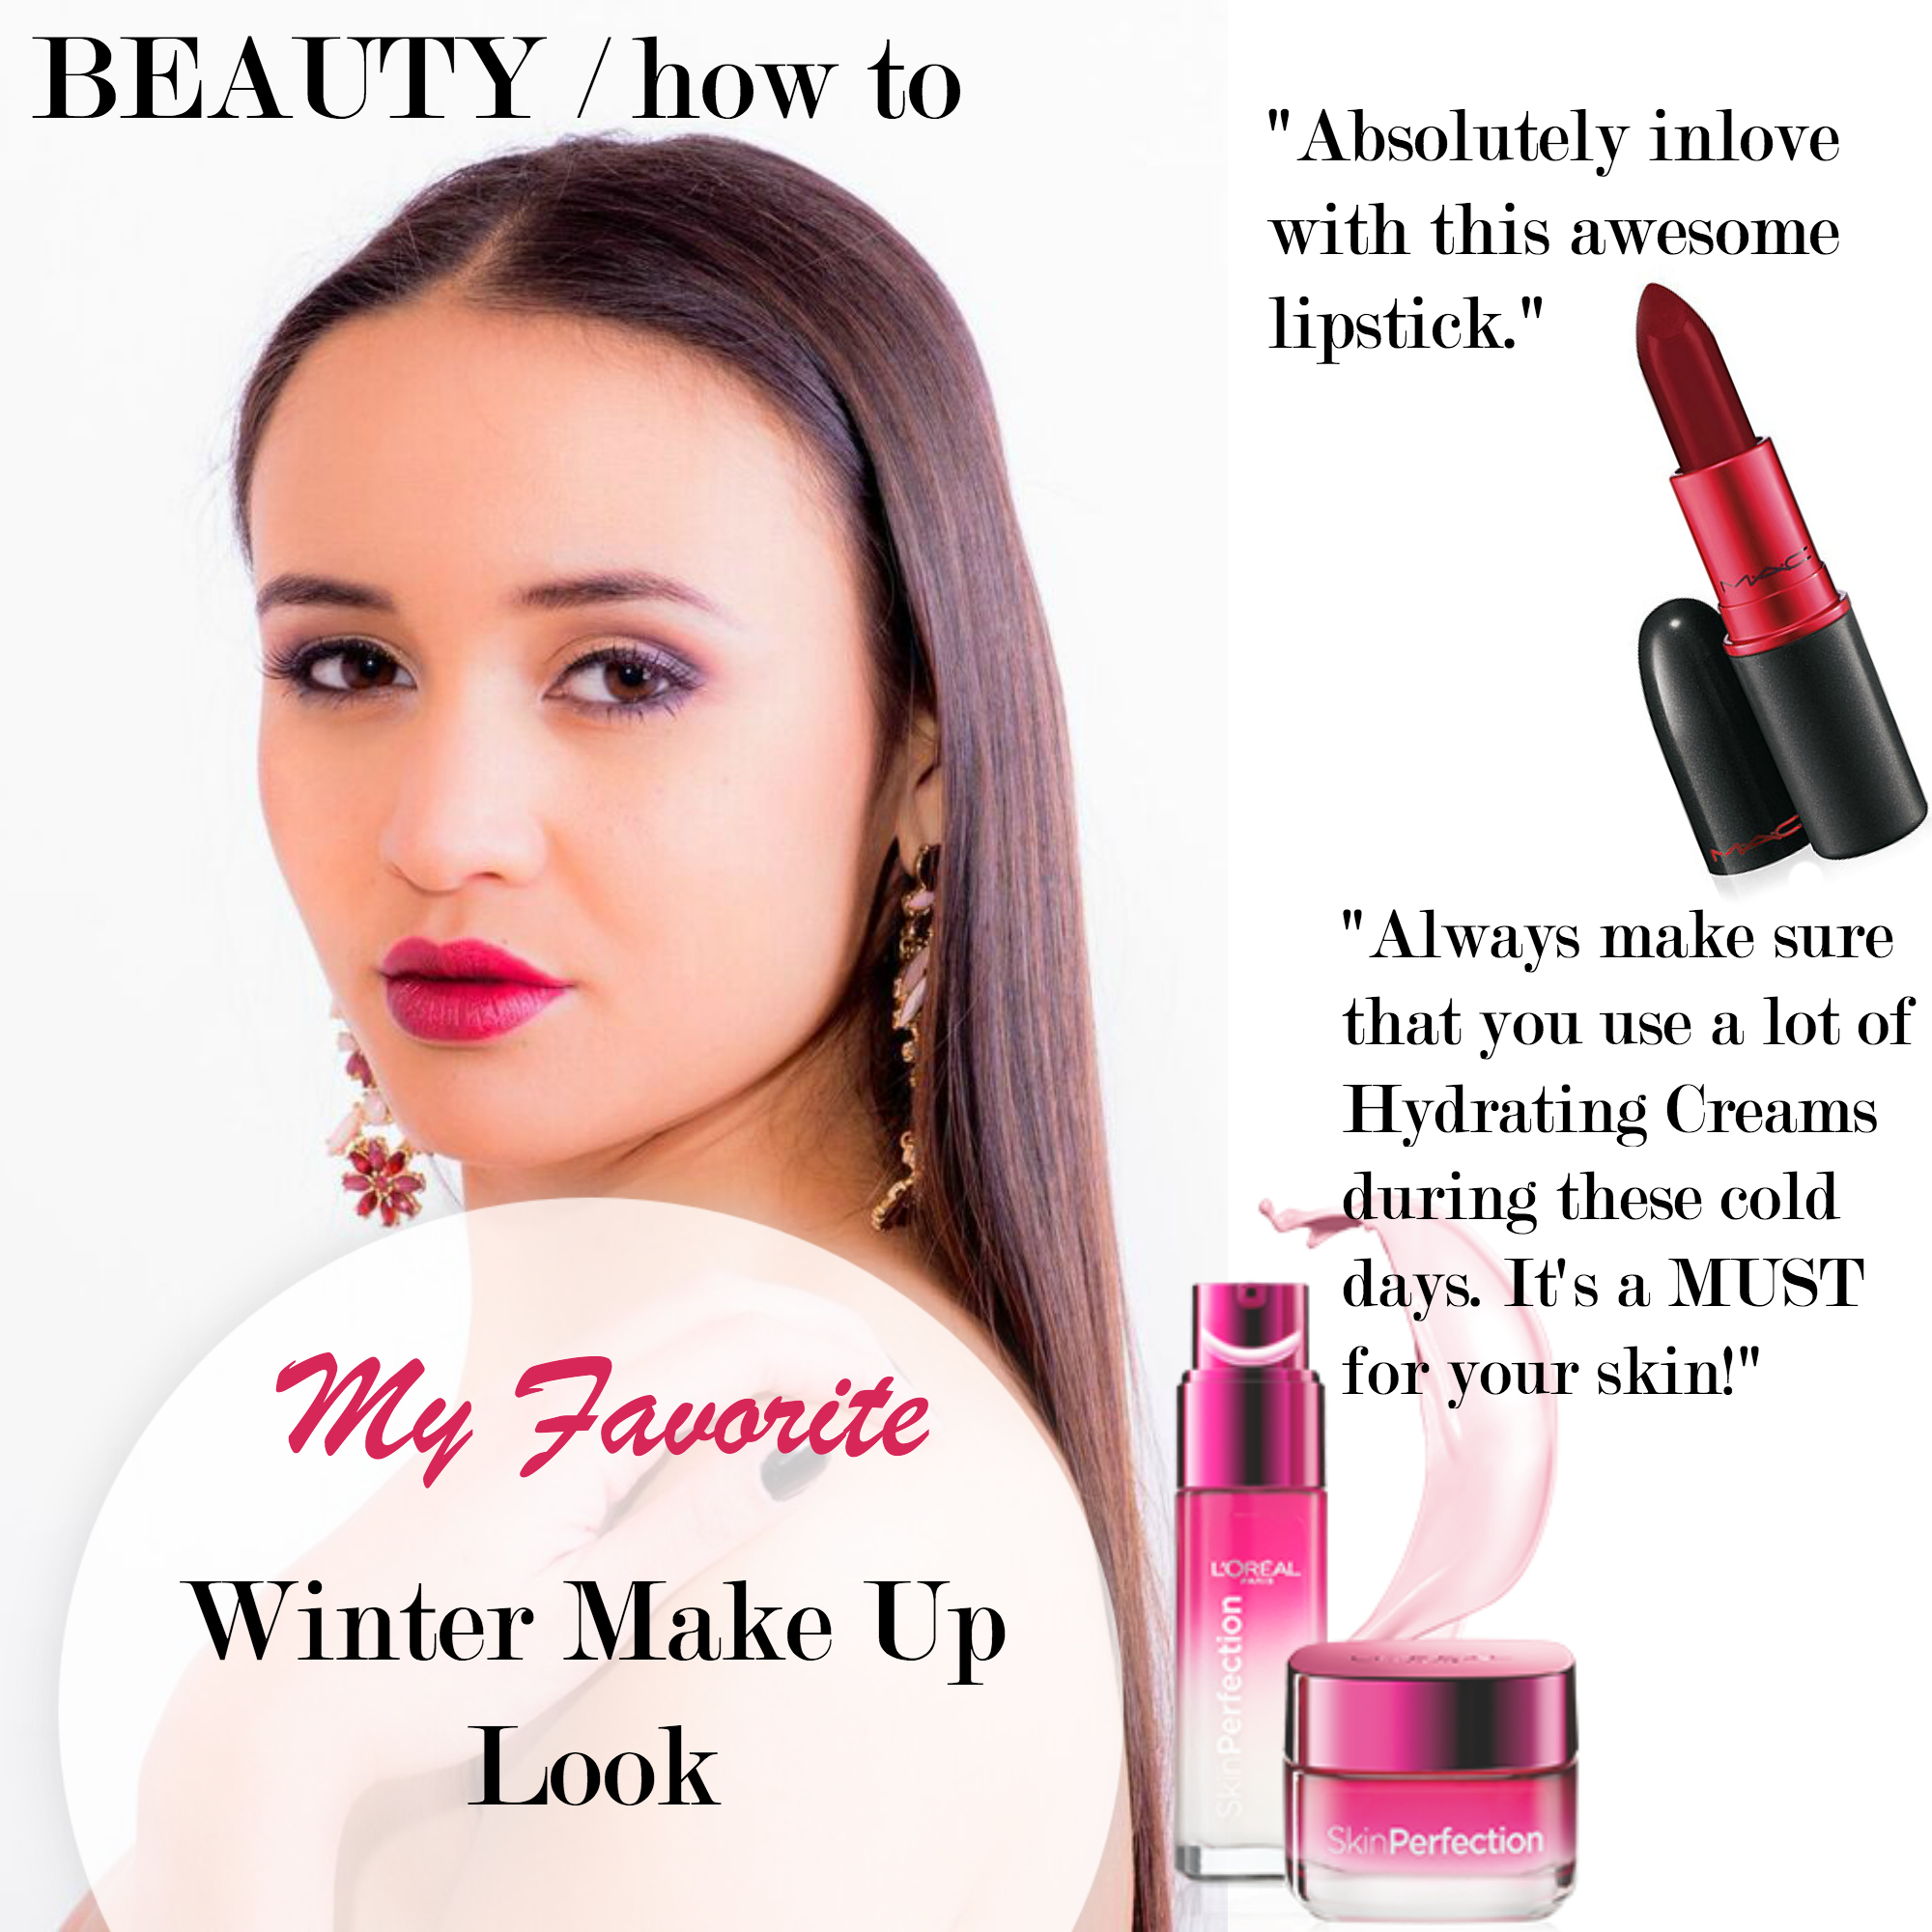 My Favorite Winter Make Up Look